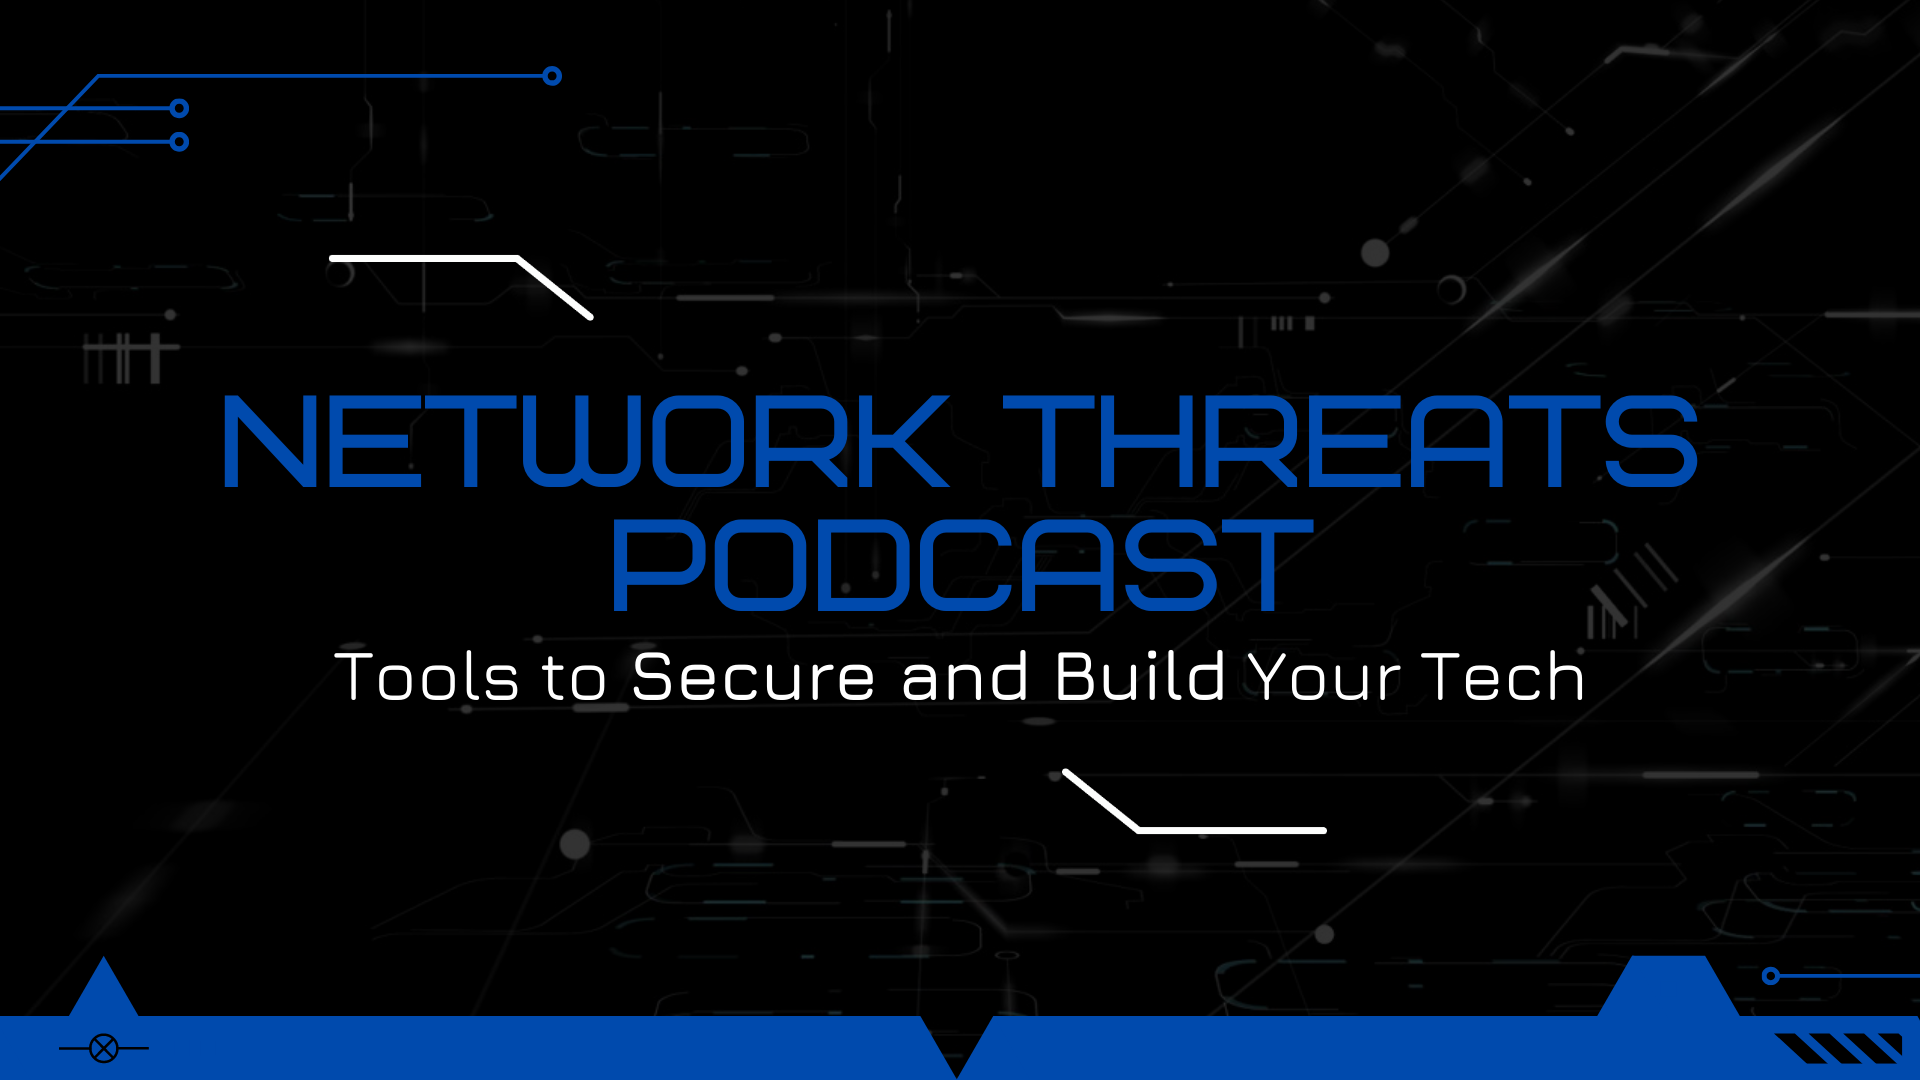 The SecureCyber Podcast